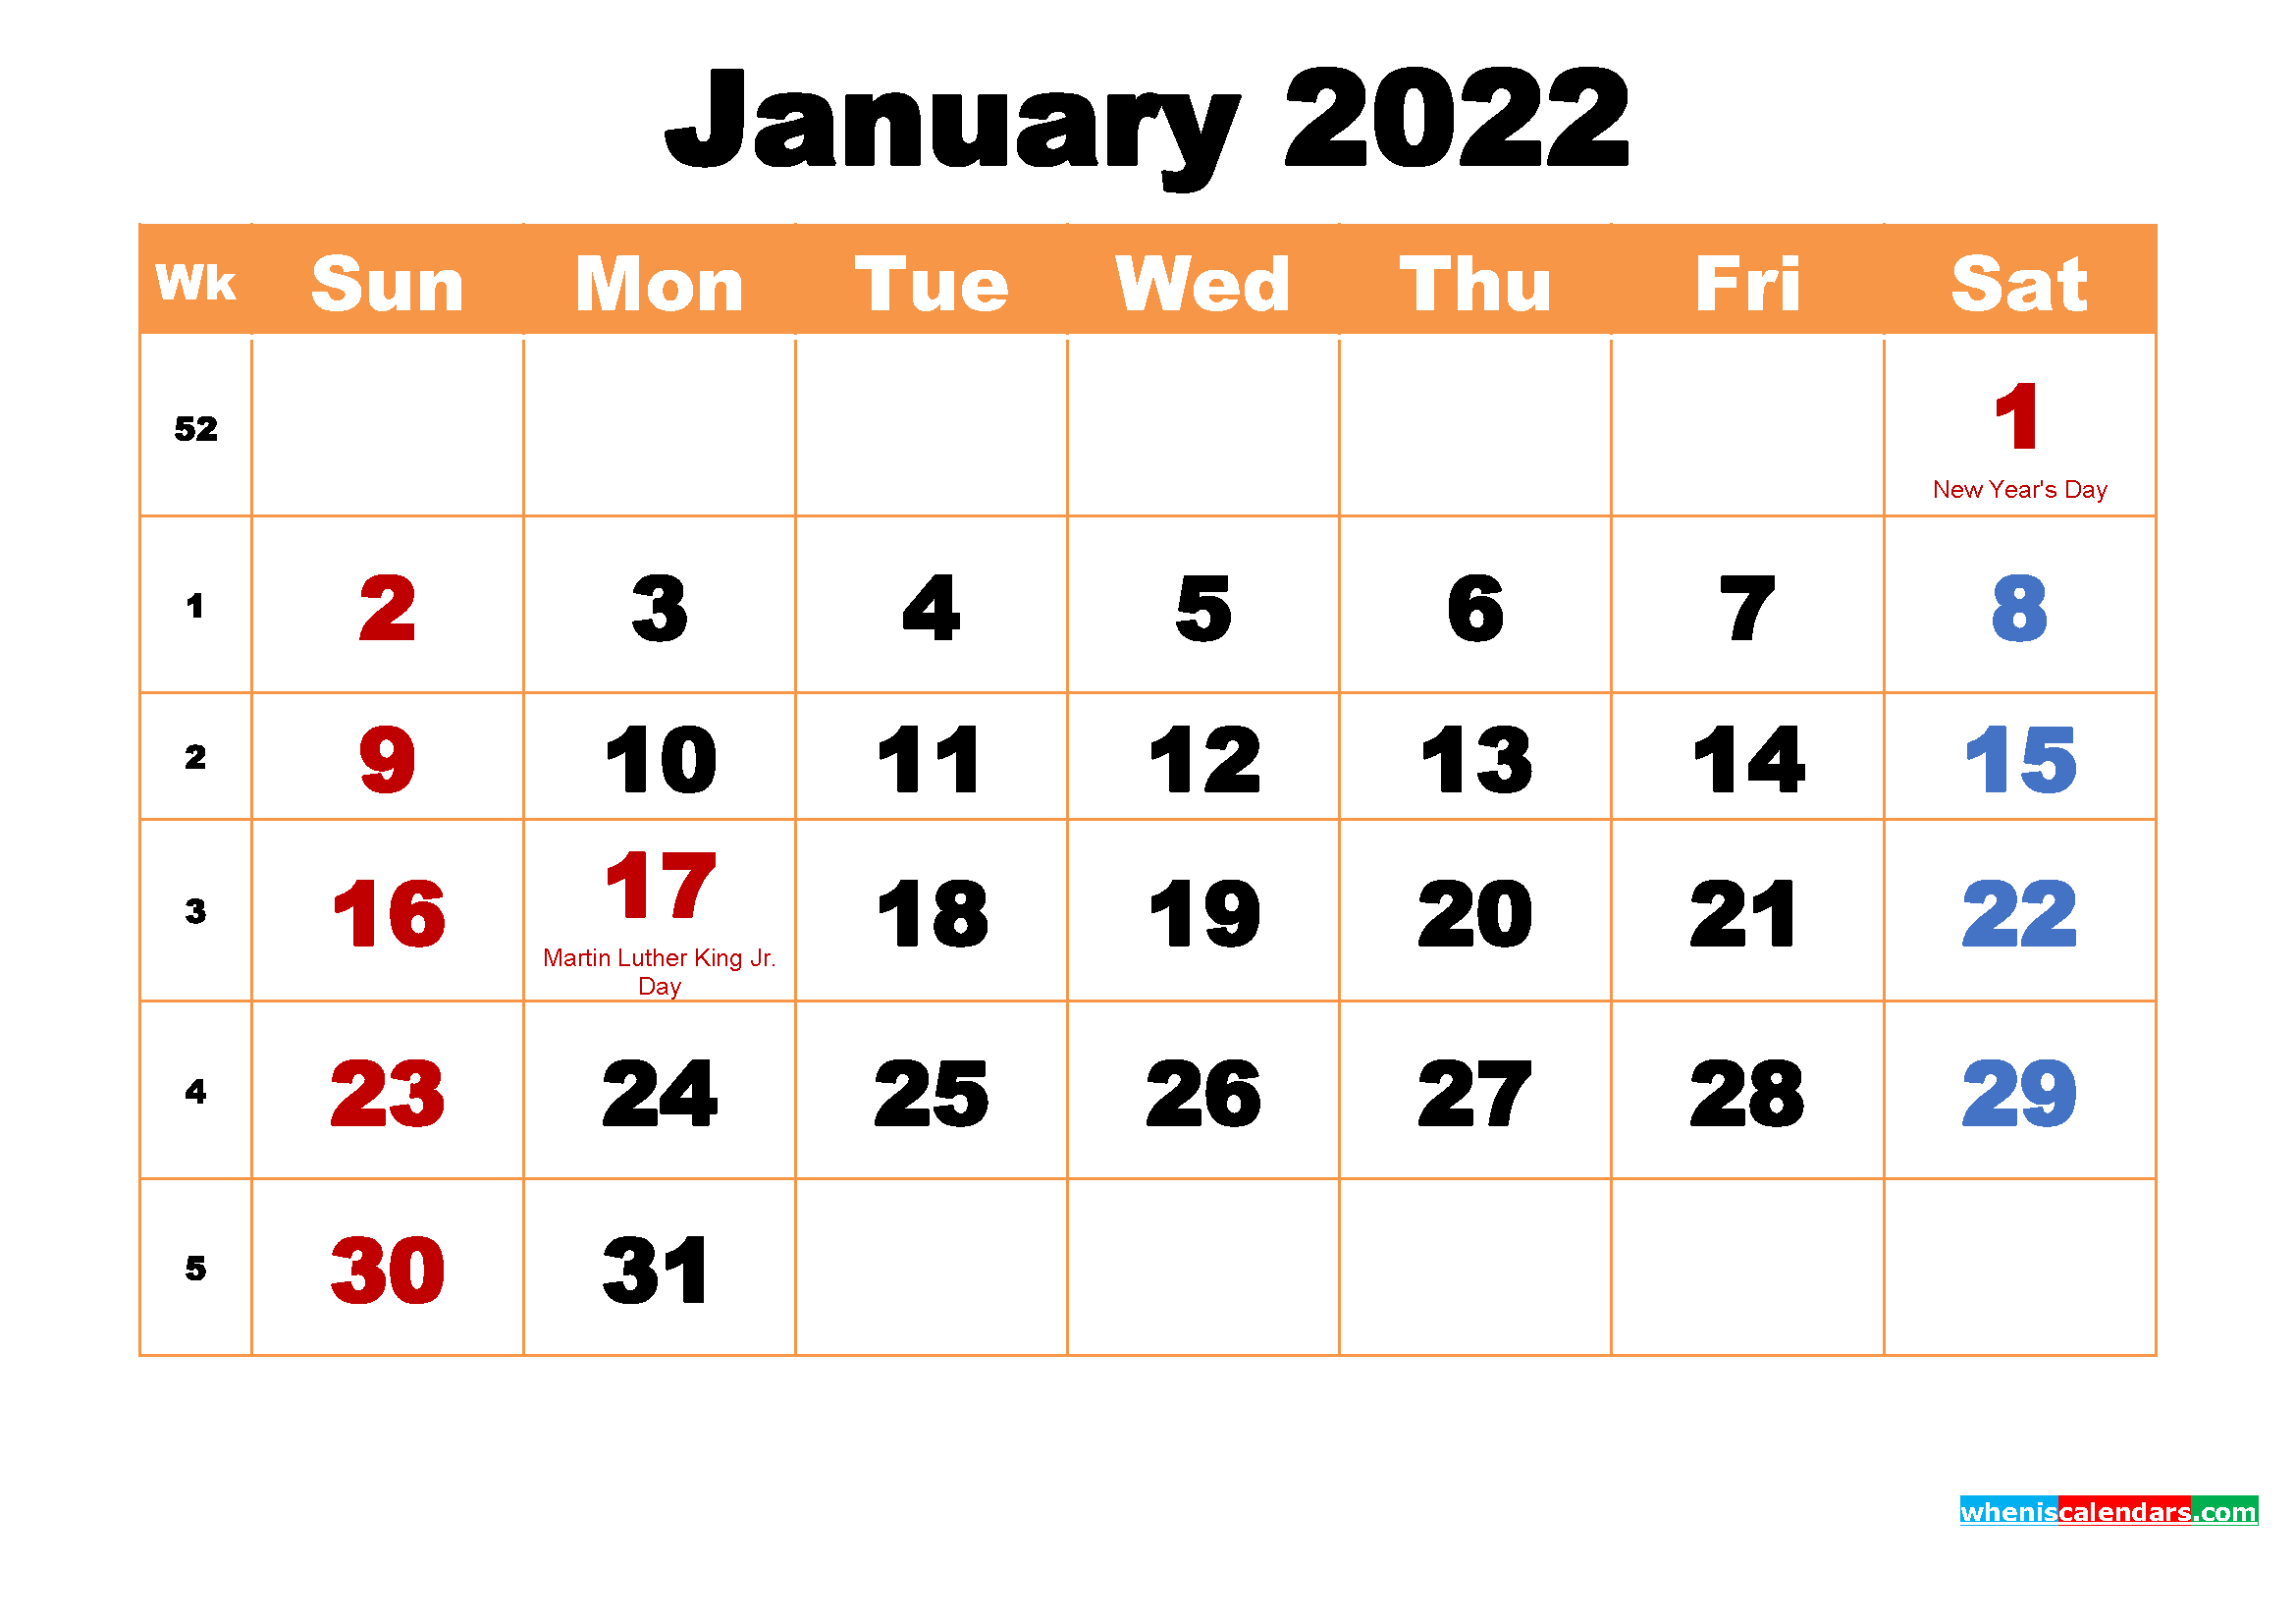 January 2022 Printable Monthly Calendar With Holidays For Printable Calendars January 2022 To December 2022